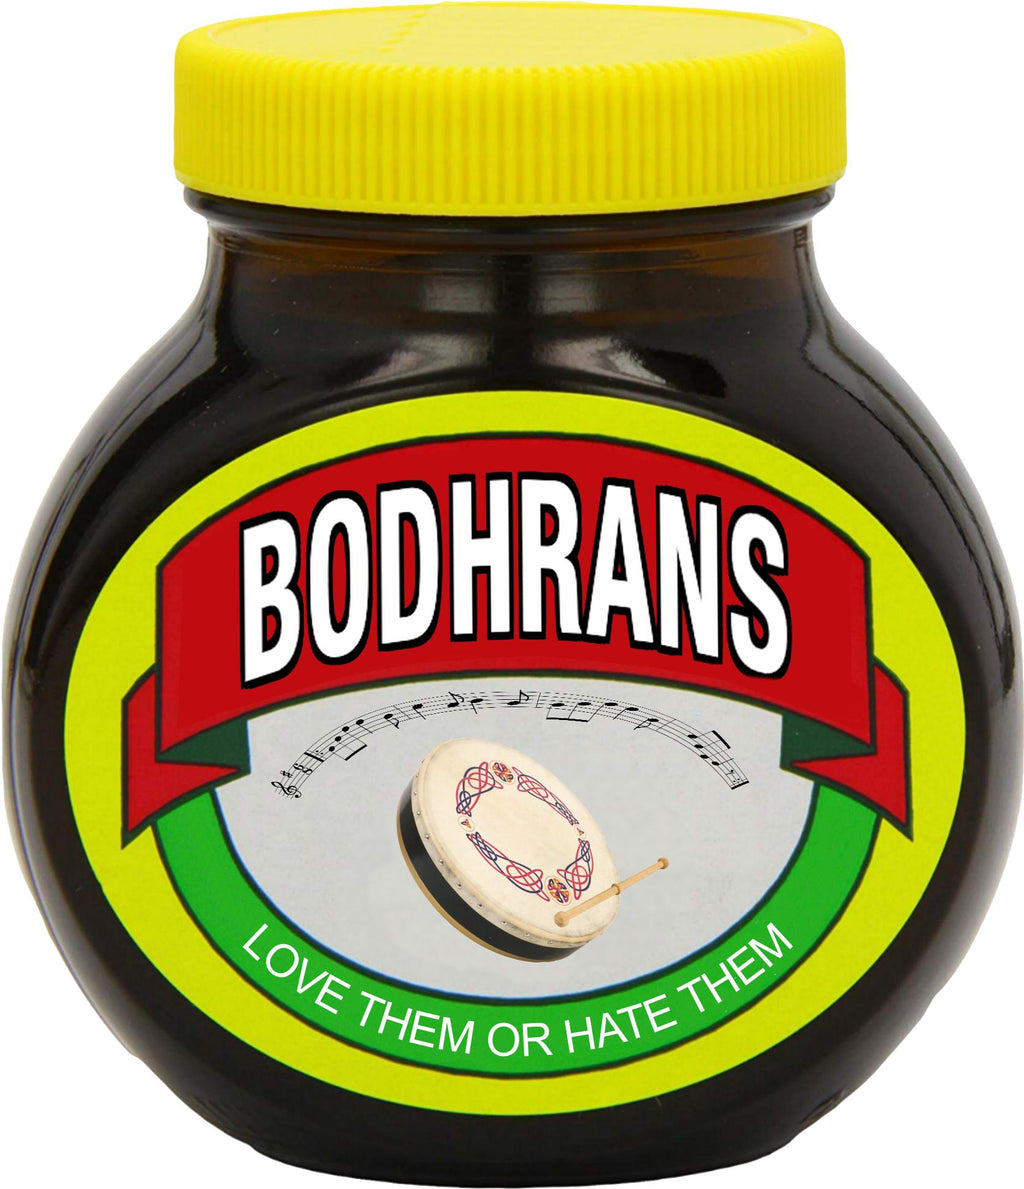 Bodhrans - Love or Hate them T-shirt - T-shirt - - Mudchutney